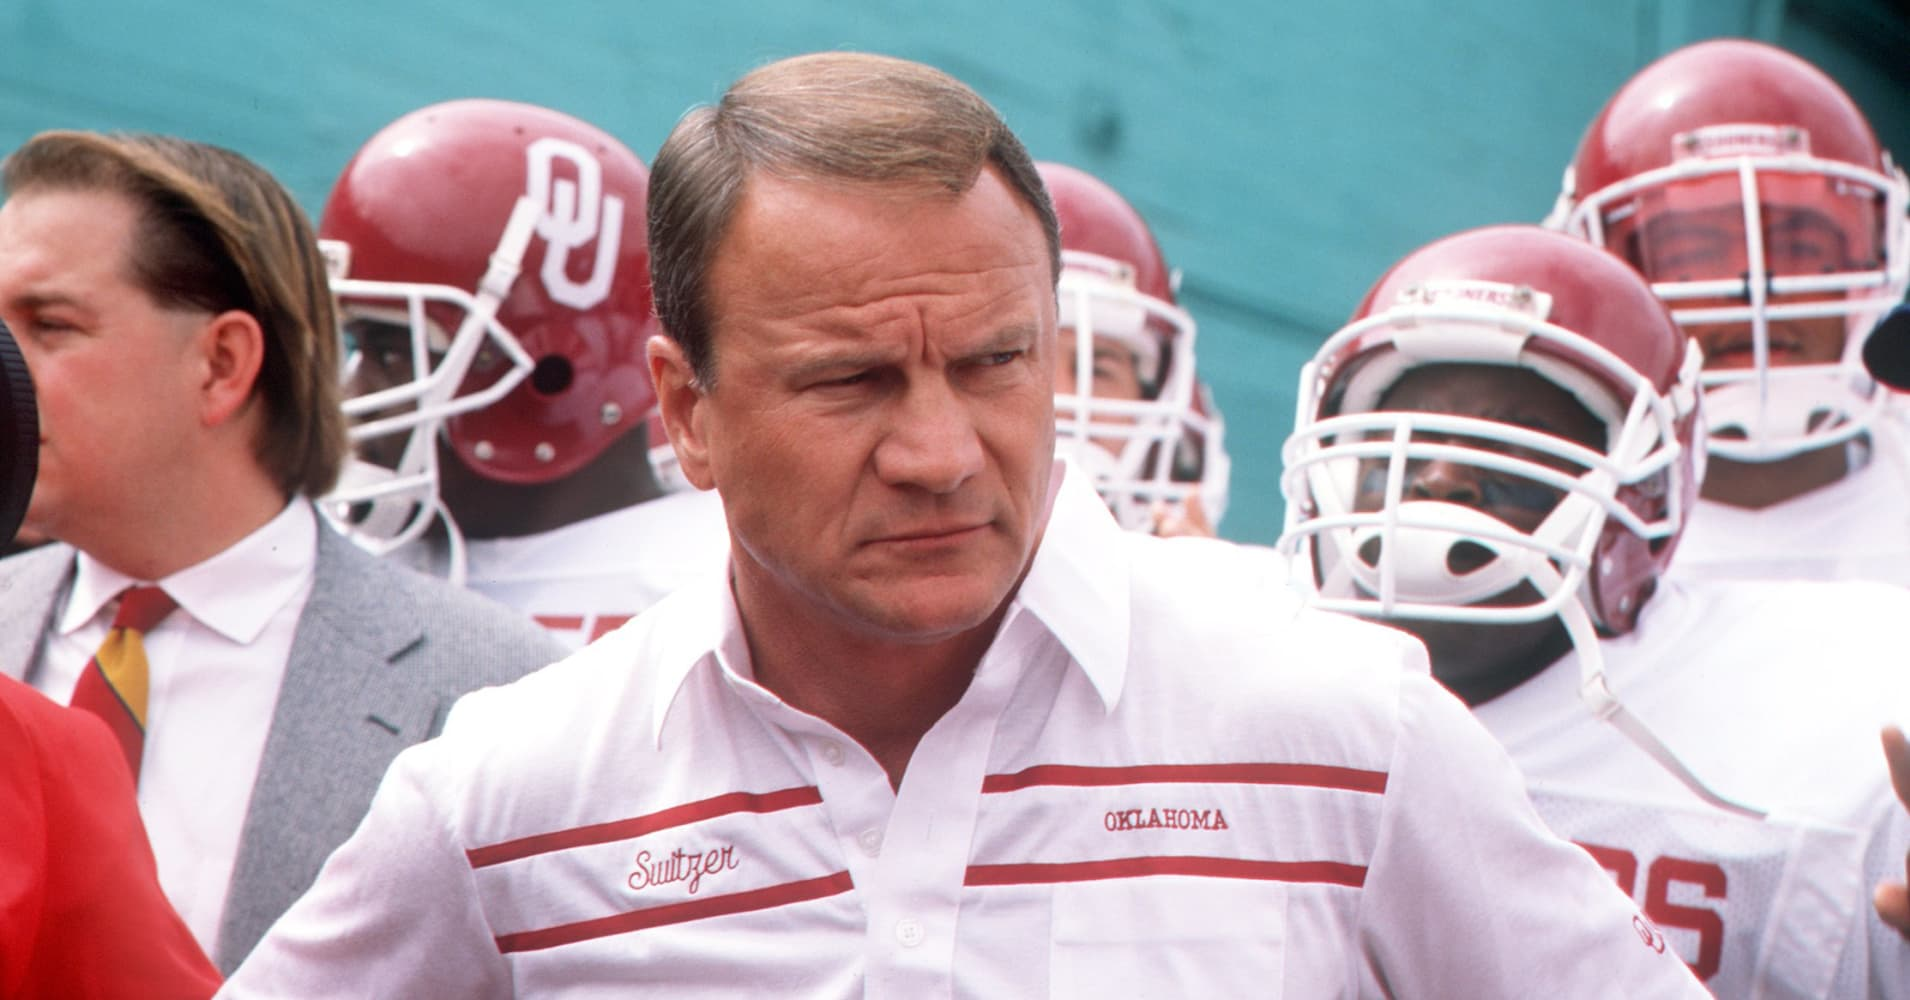 an introduction to the life and career of barry switzer Helping people is one main reason why four incoming law students cited in choosing a legal career  barry switzer: the players' coach  students do intro work before enrolling at tu law .